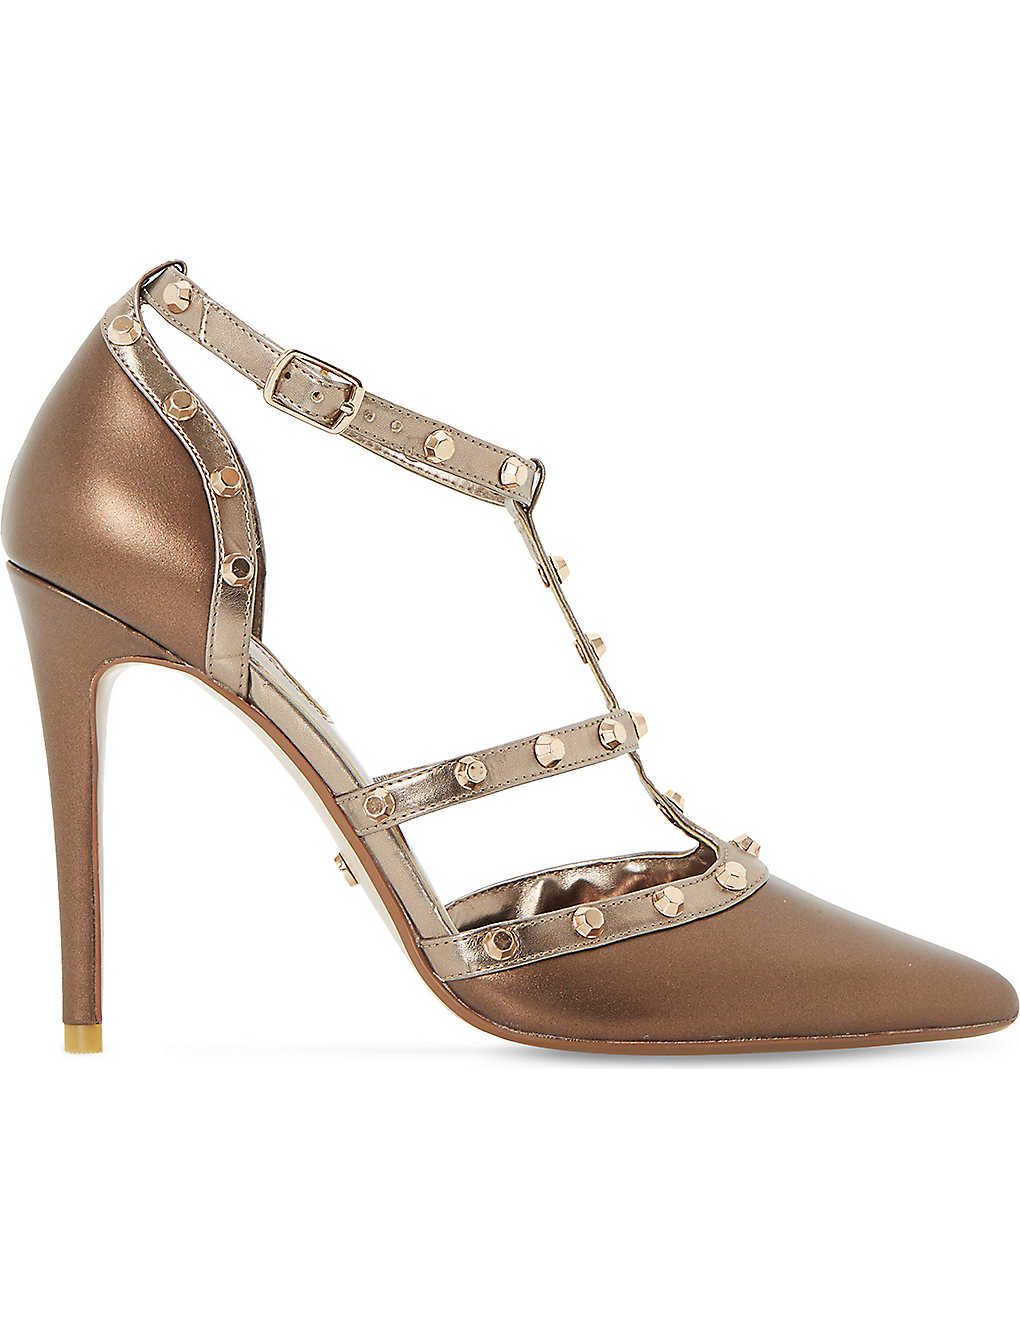 ad887100b60d DUNE - Daenerys studded leather courts